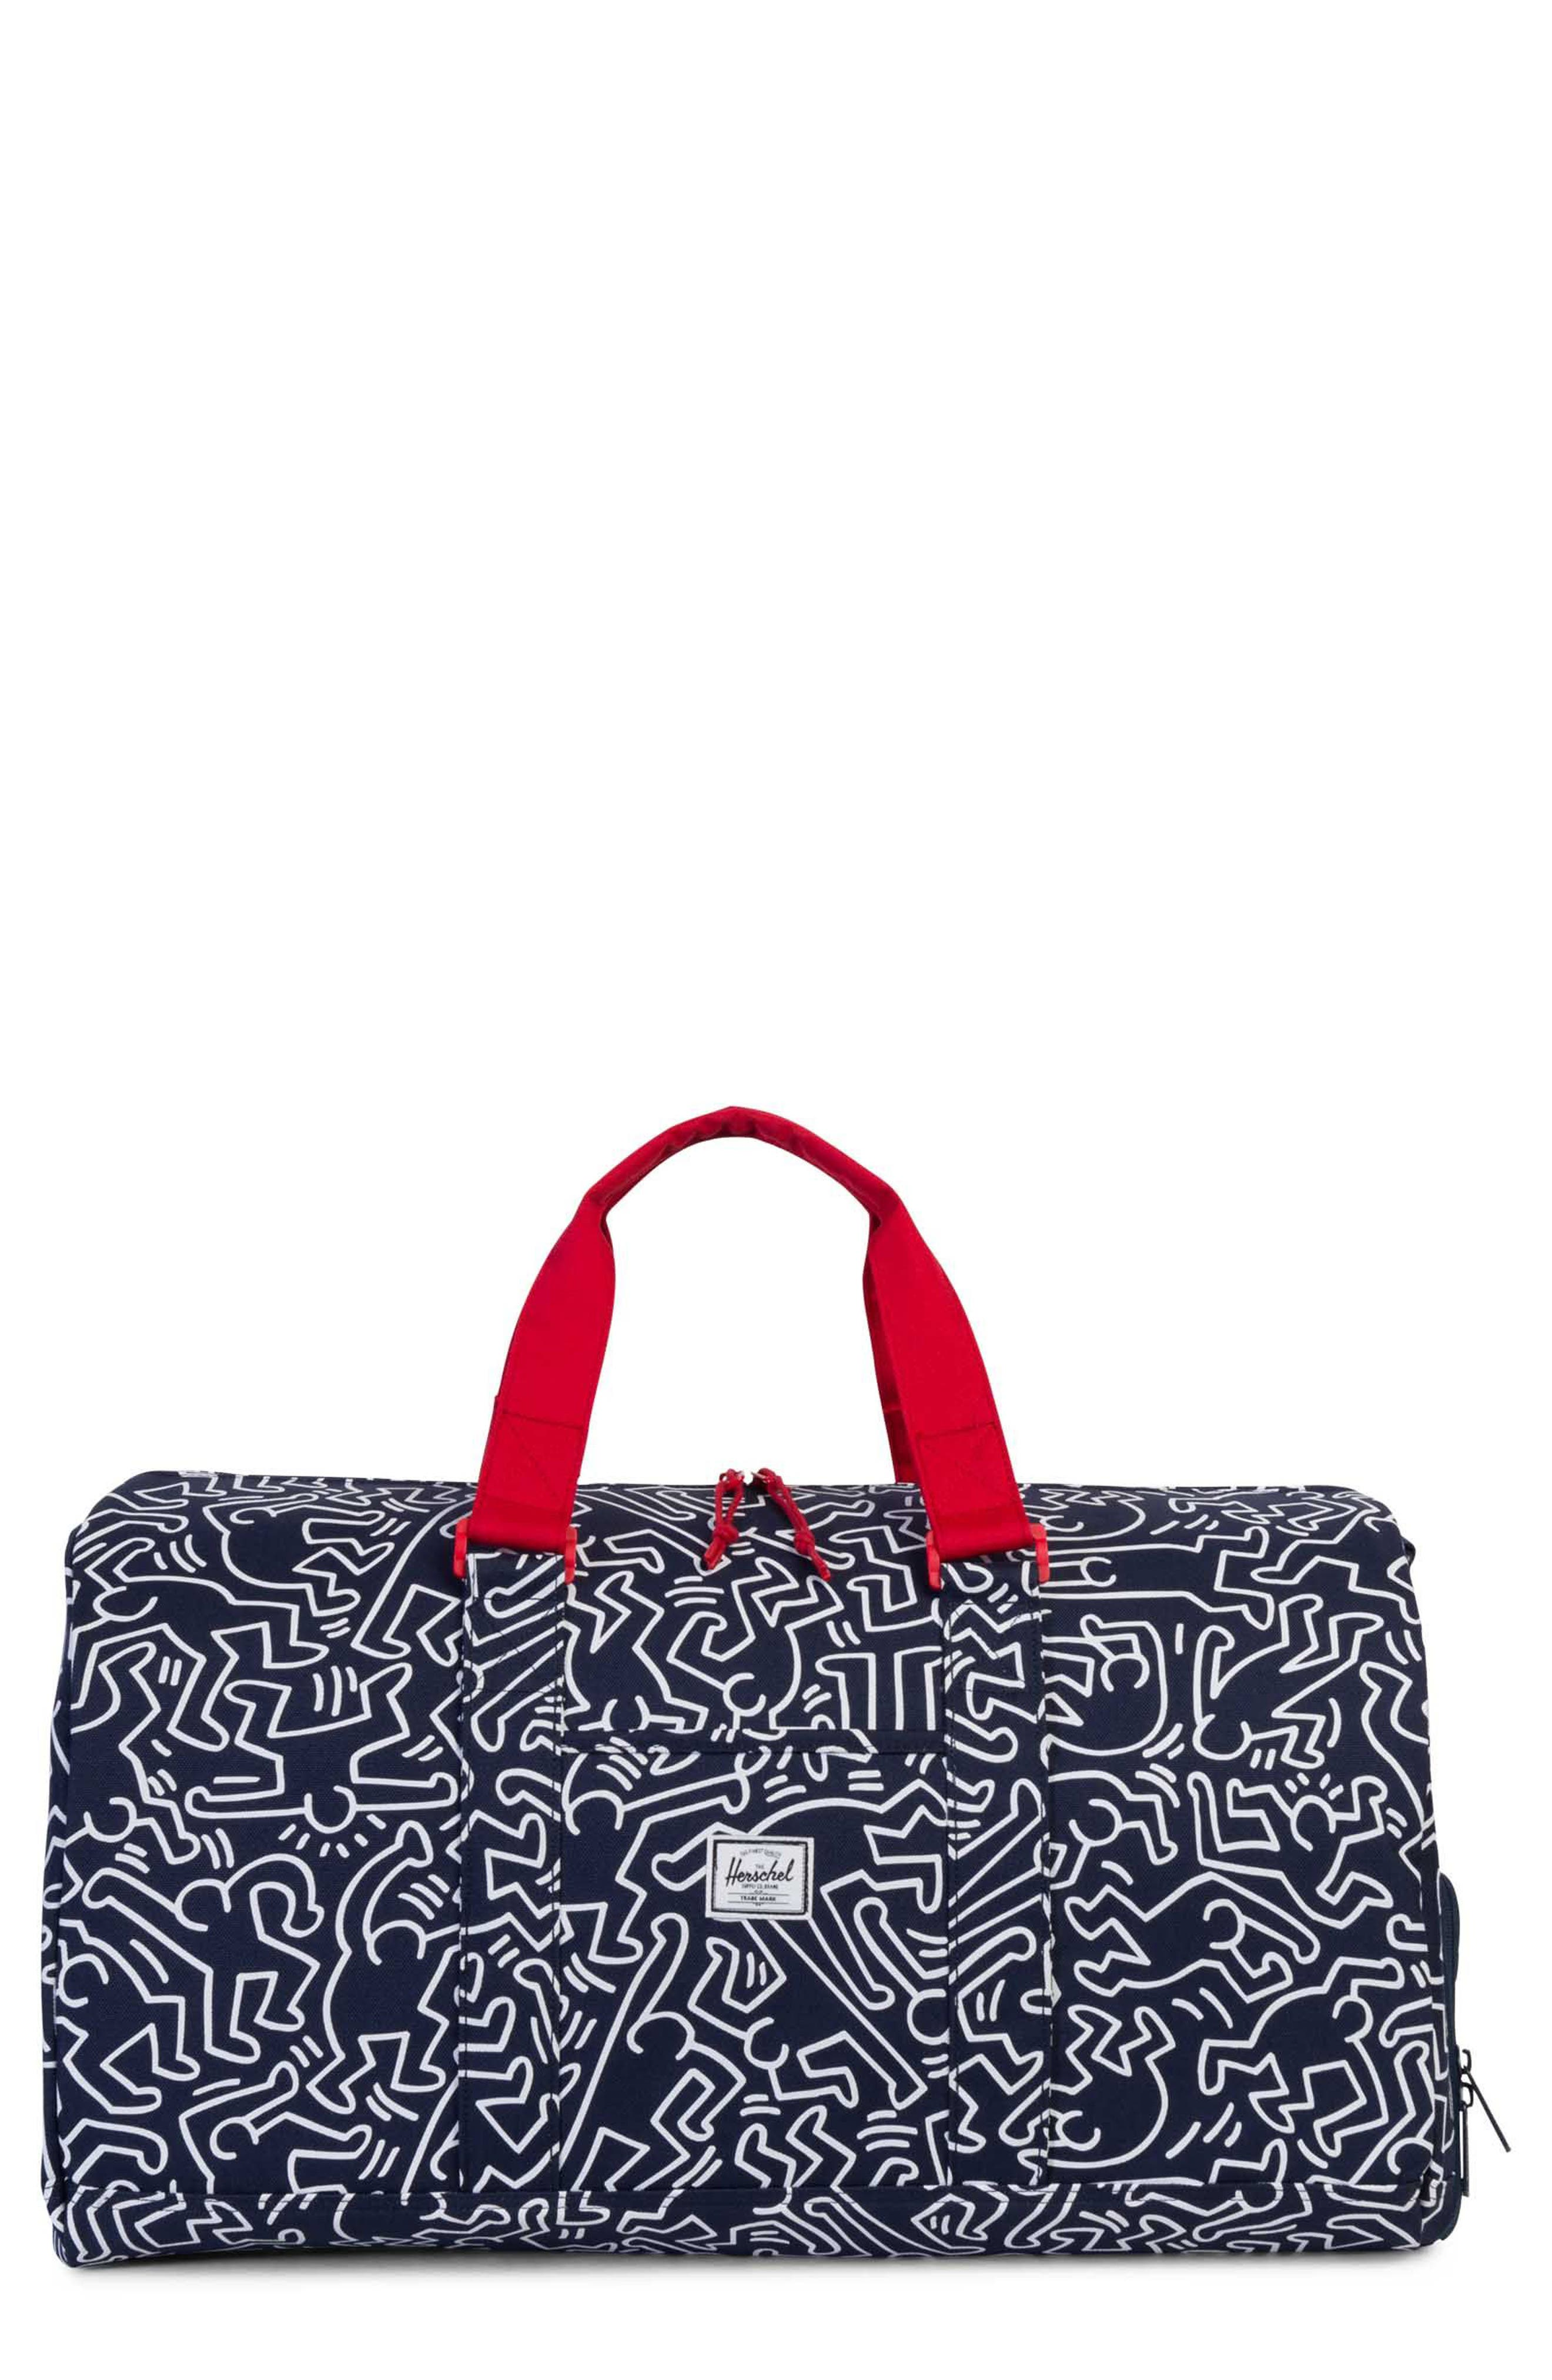 Novel x Keith Haring Duffel Bag,                         Main,                         color, Peacoat Keith Haring